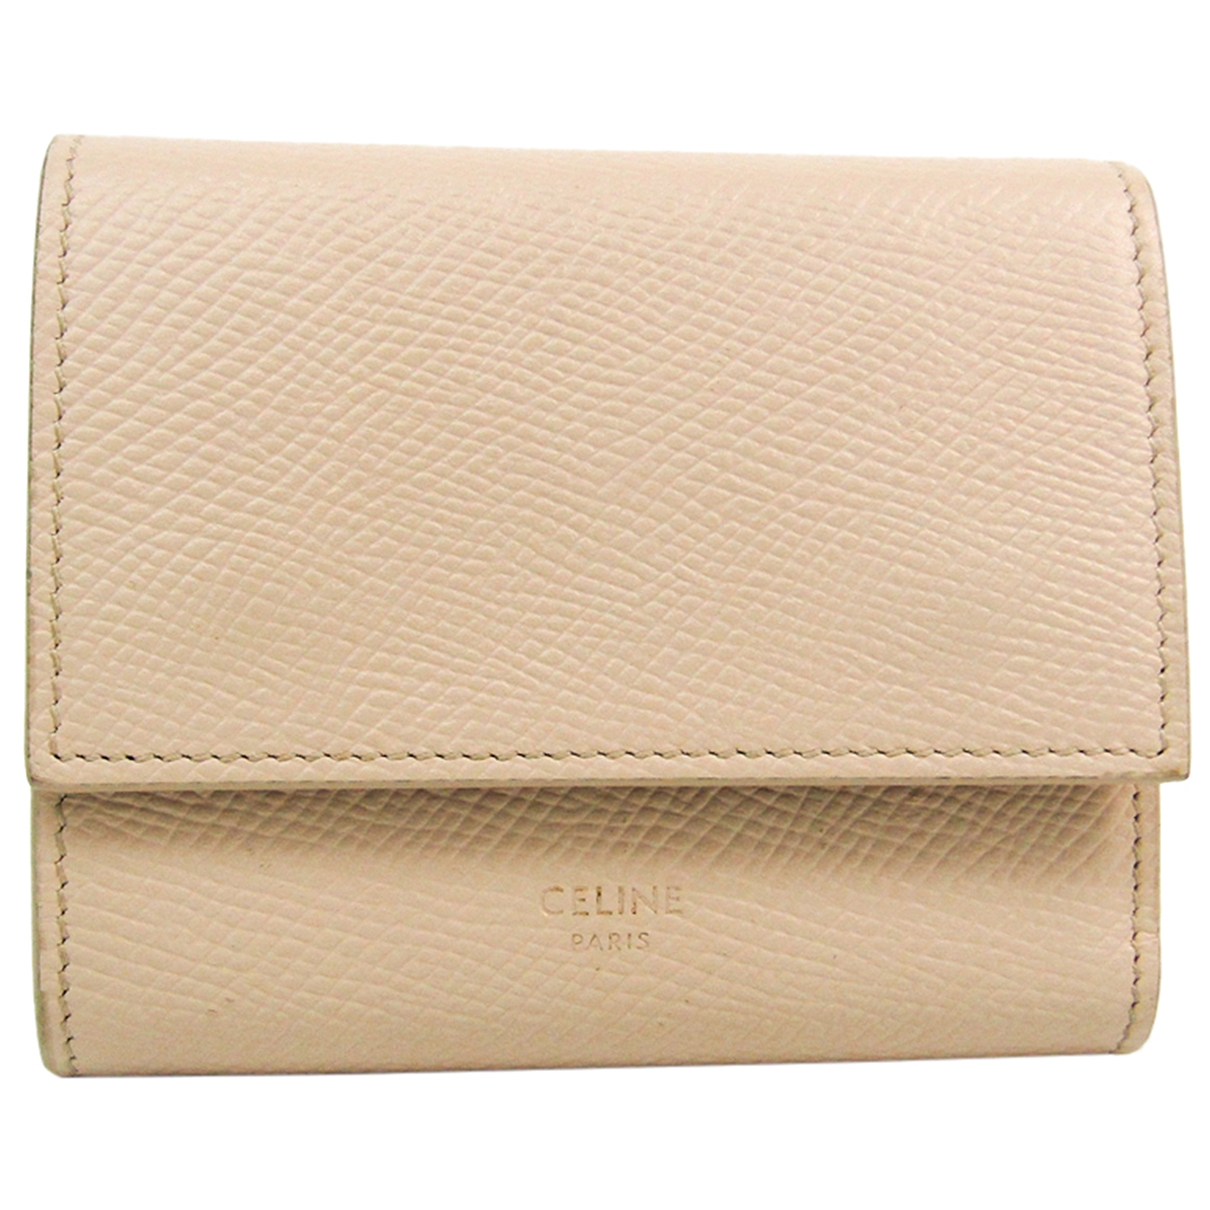 Celine \N Beige Leather wallet for Women \N